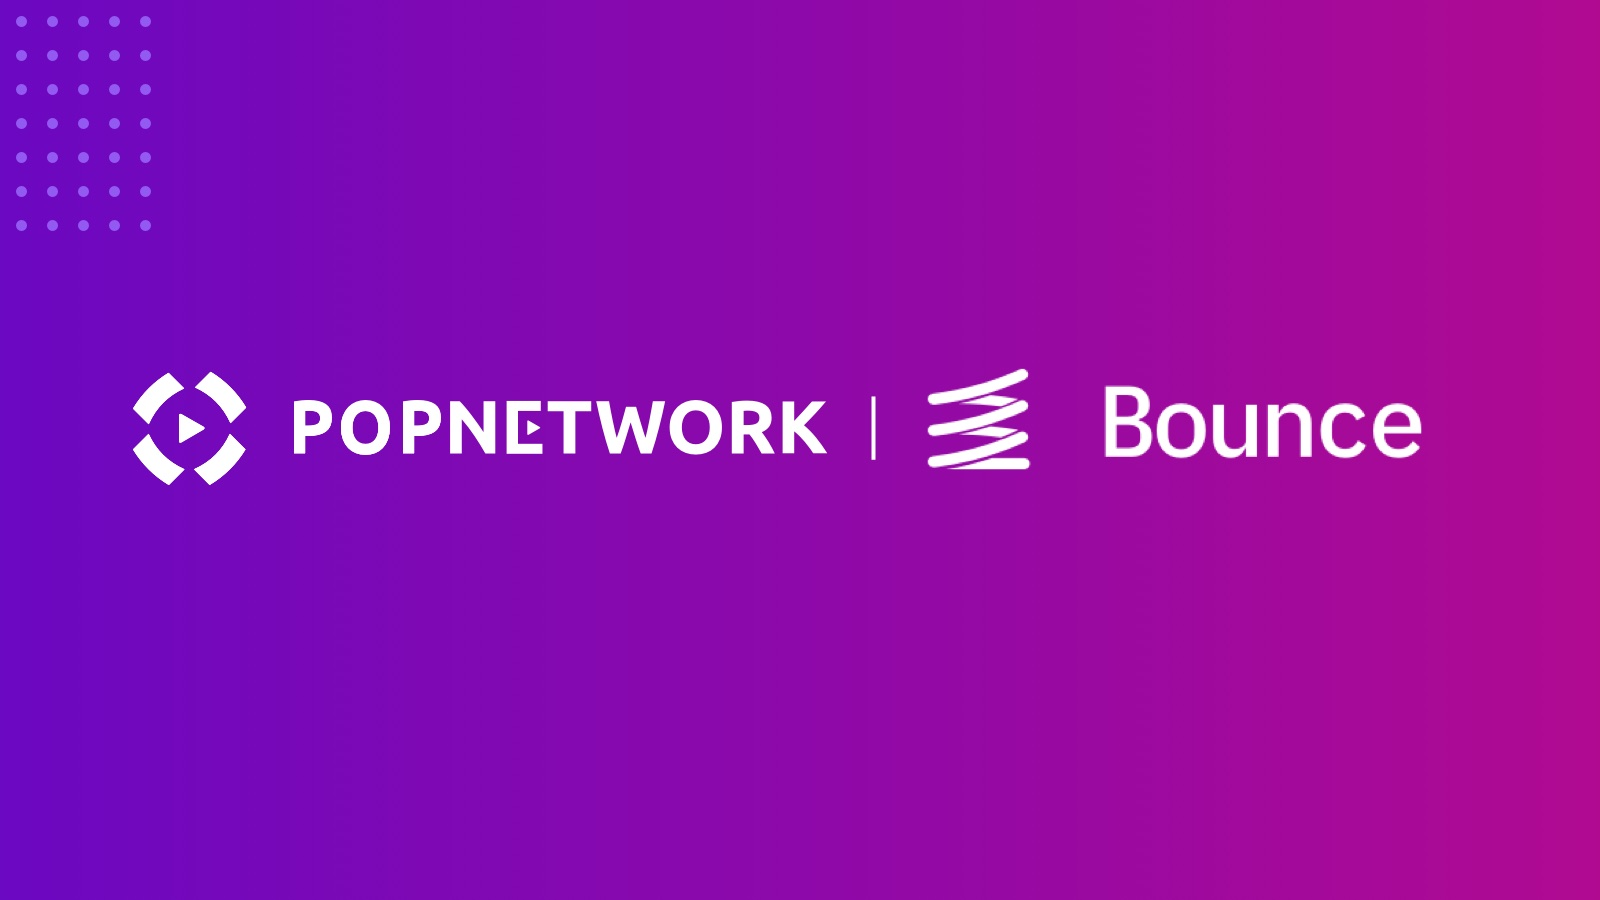 pop_network_bounce-1